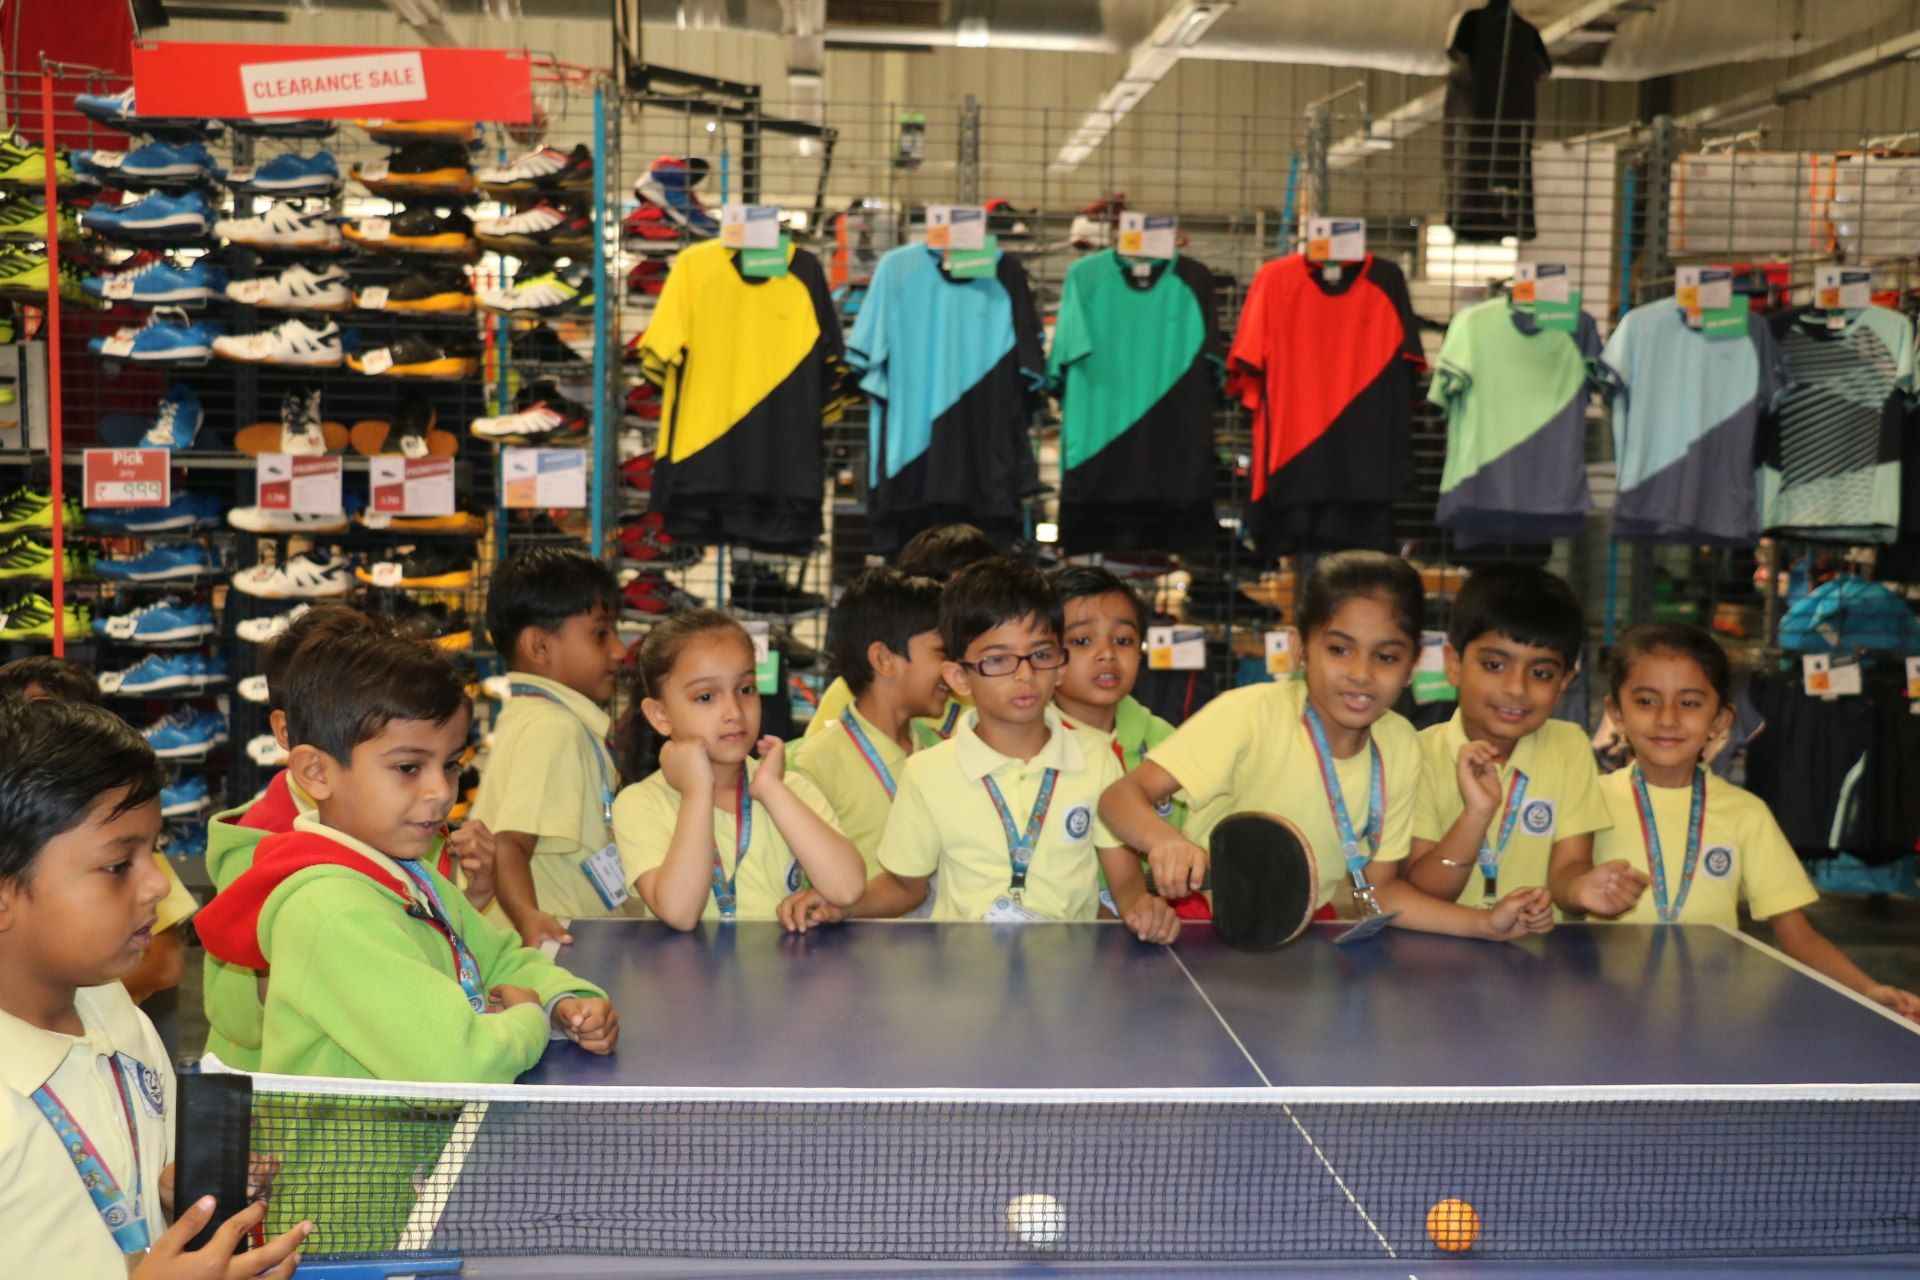 Decathlon is one of the largest Sports stores in Ahmedabad